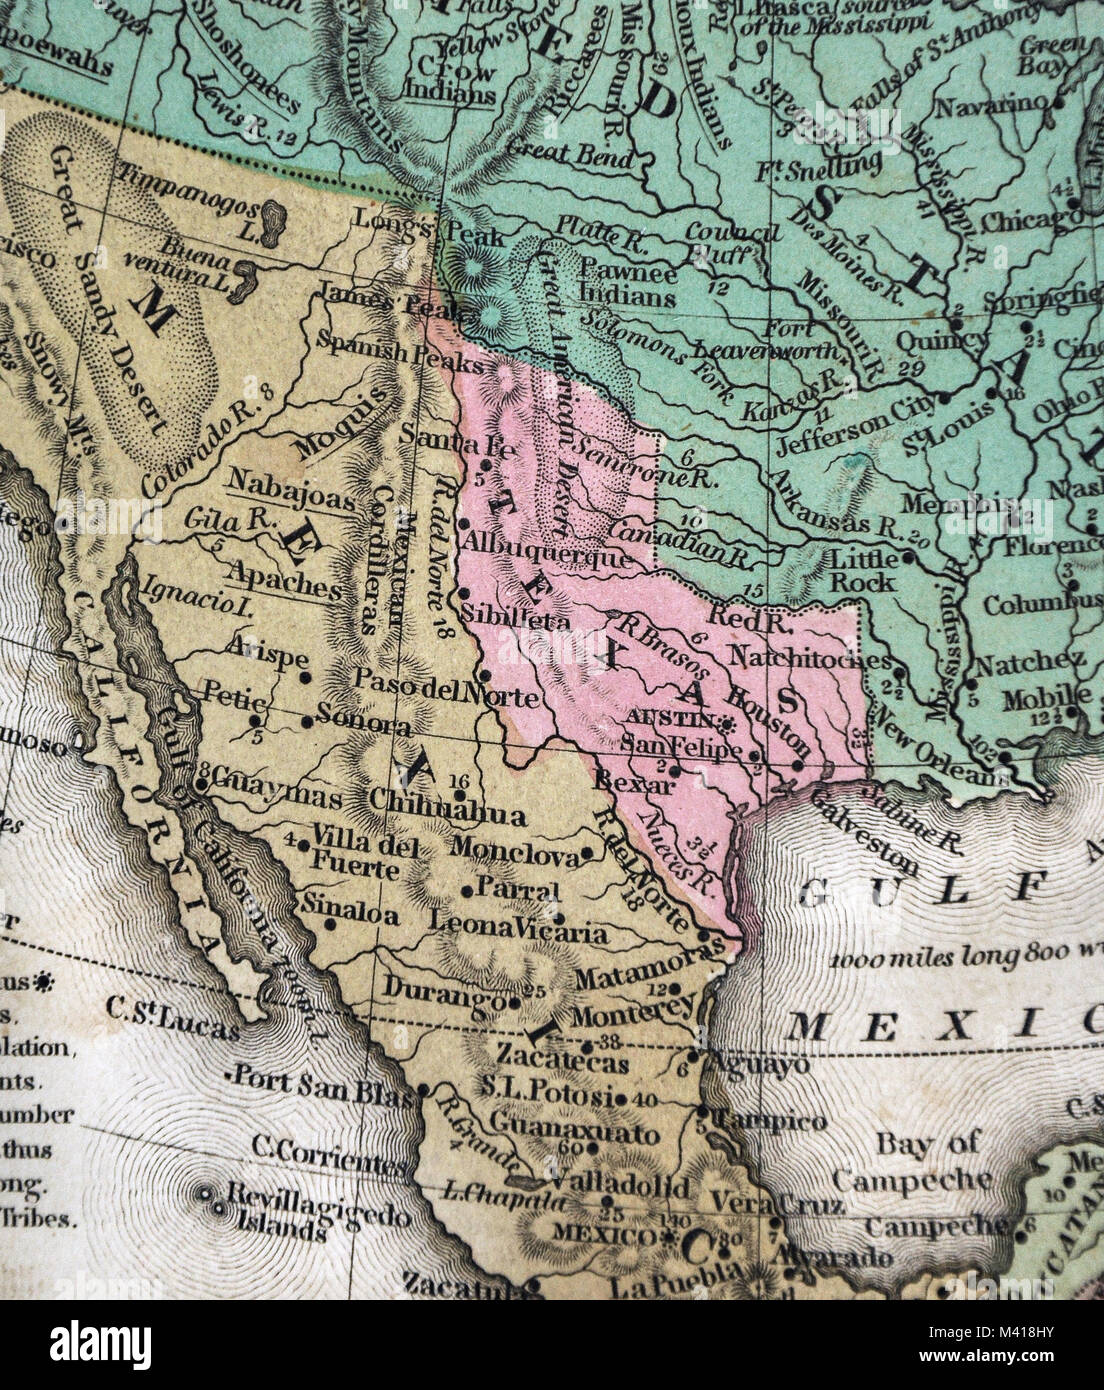 1839 Mitchell Map Republic of Texas United States Mexico North